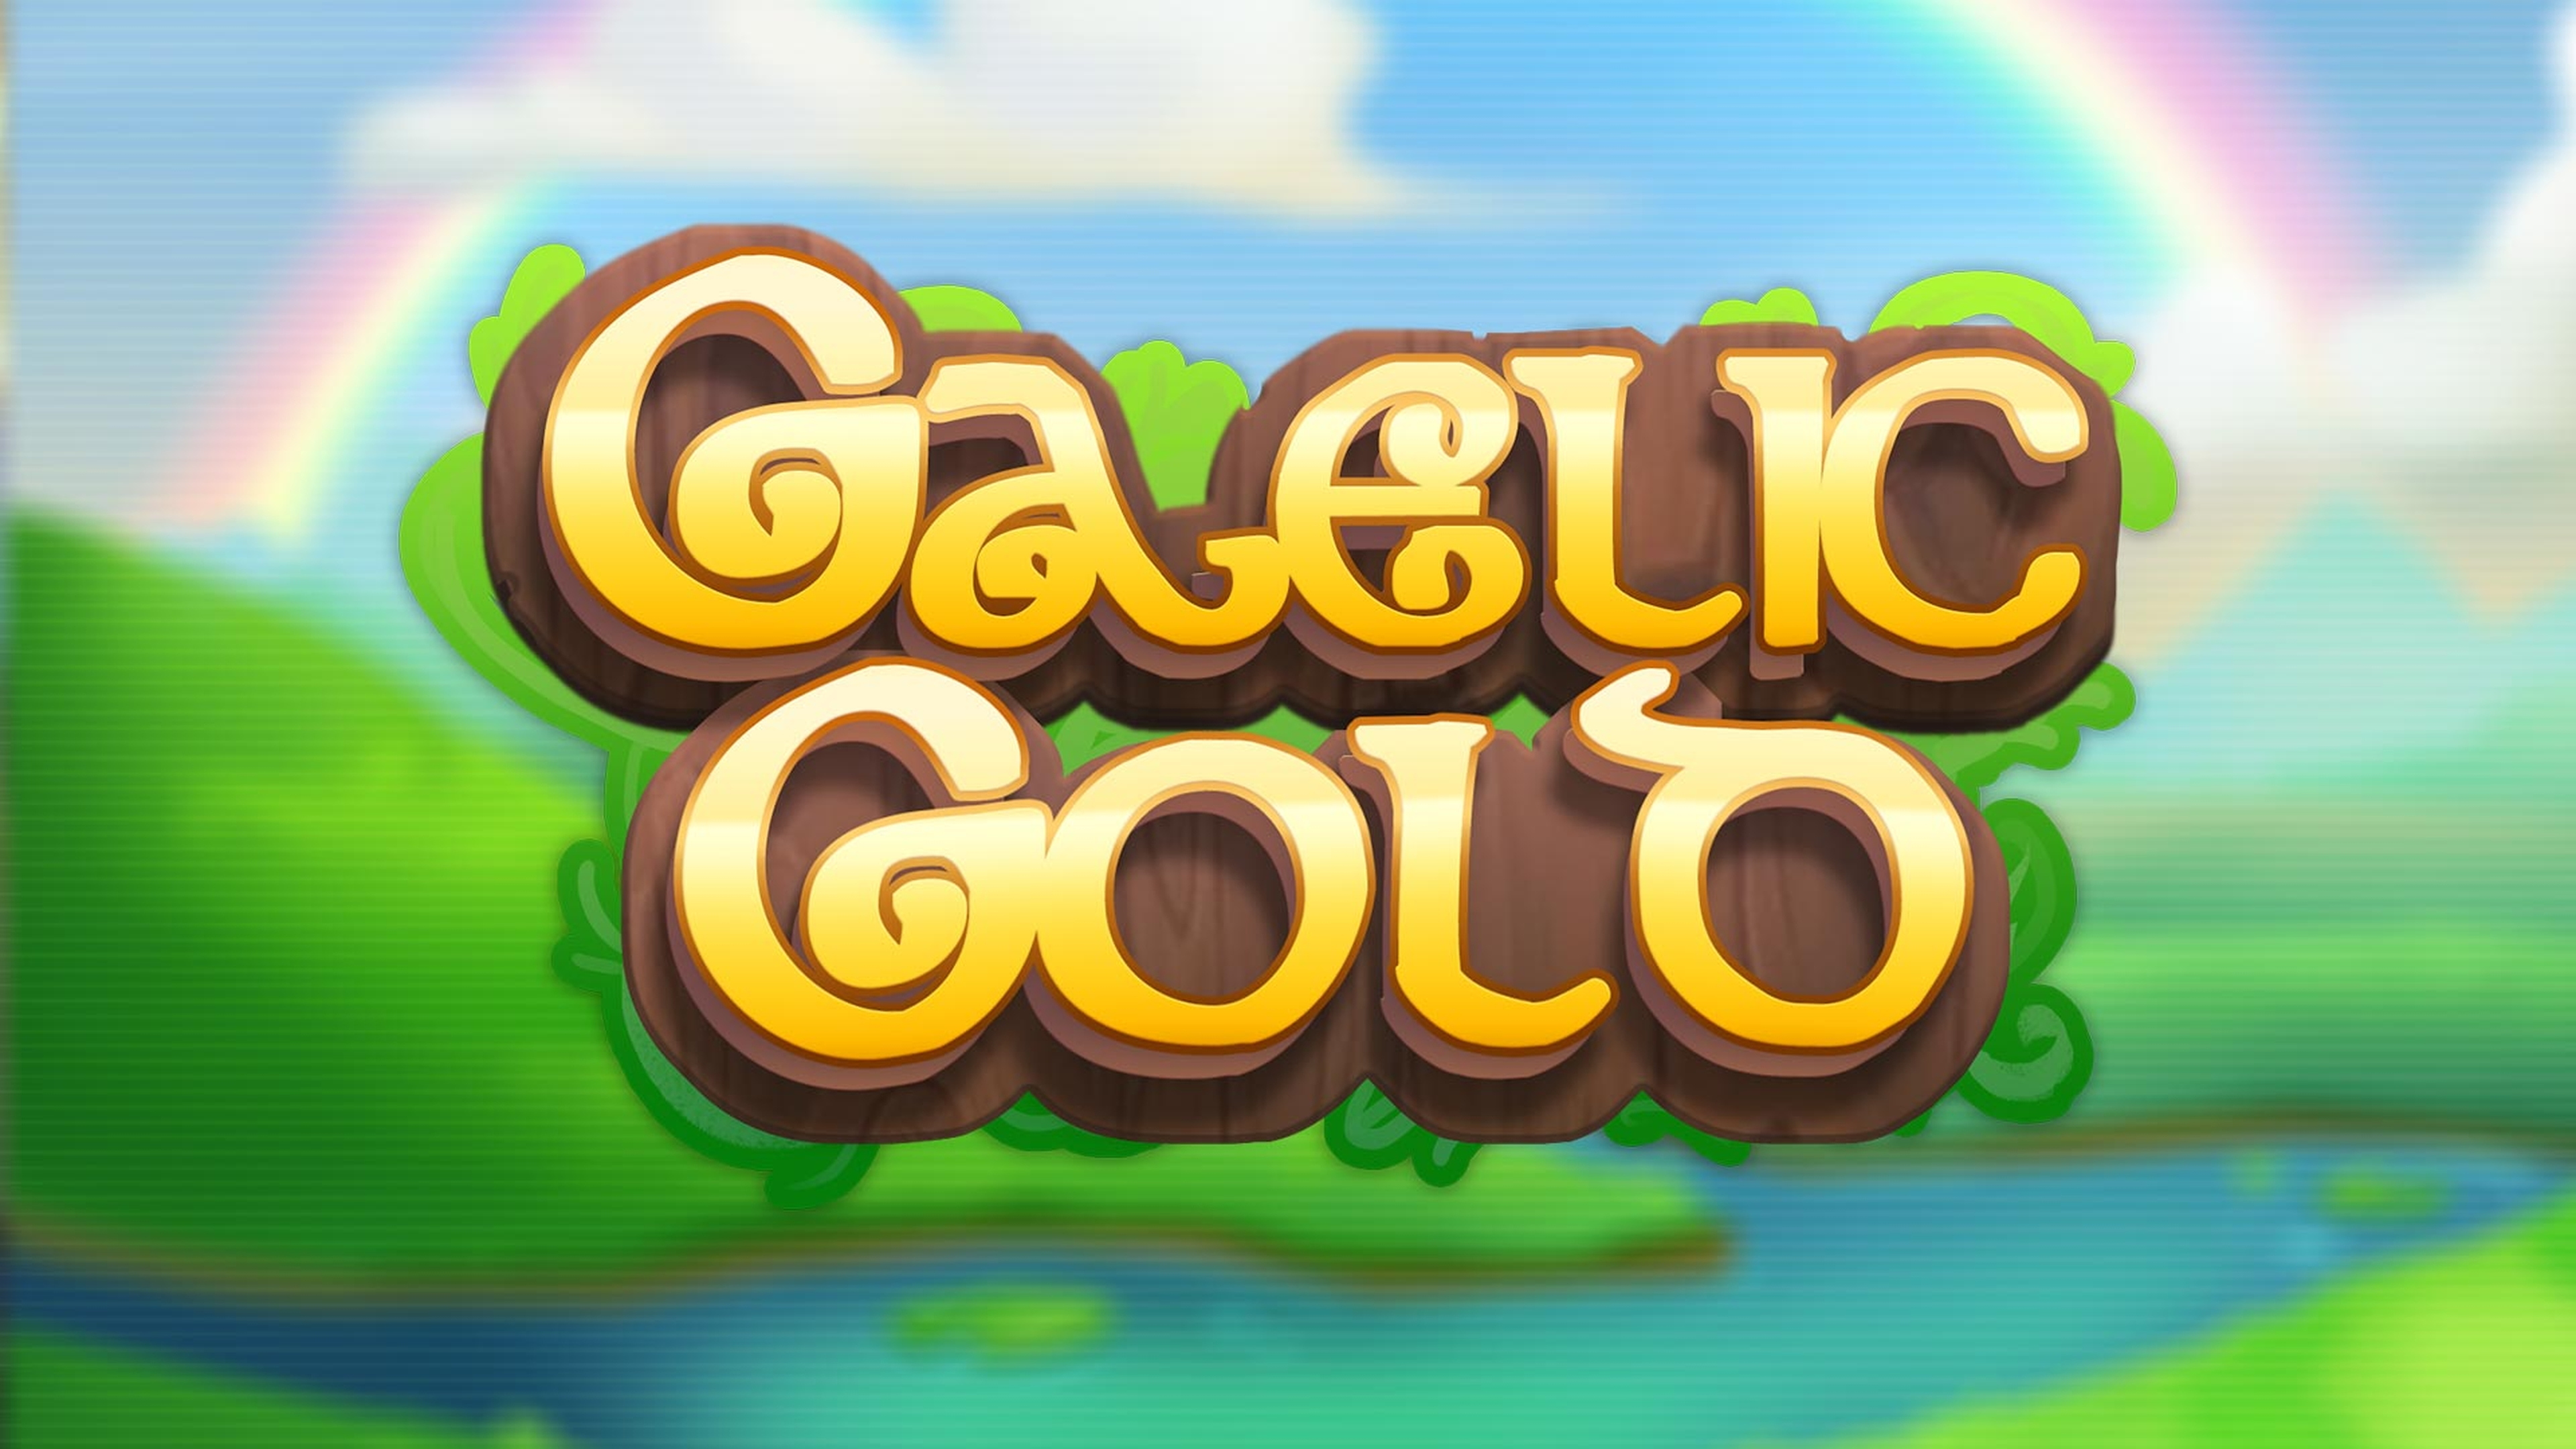 The Gaelic Gold Online Slot Demo Game by Nolimit City